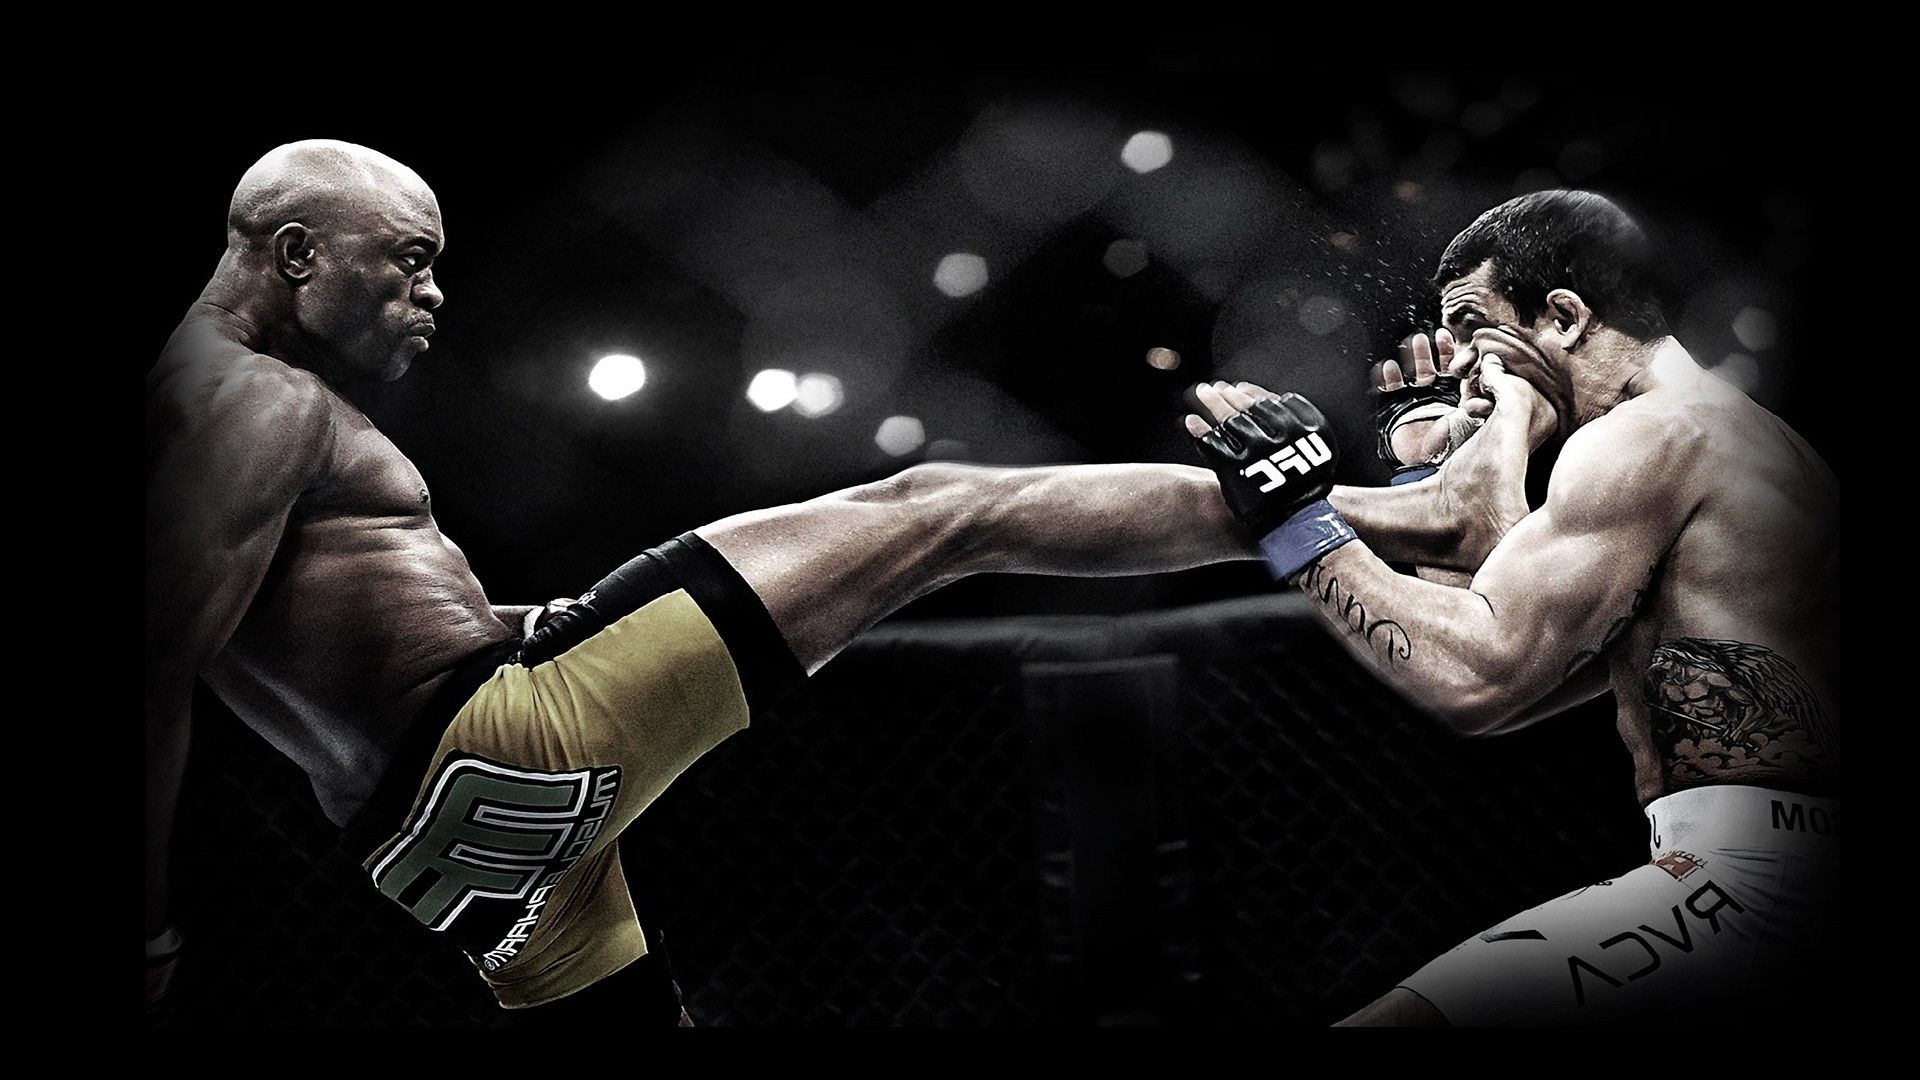 1920x1080 62+ Hd Mma Wallpapers on WallpaperPlay